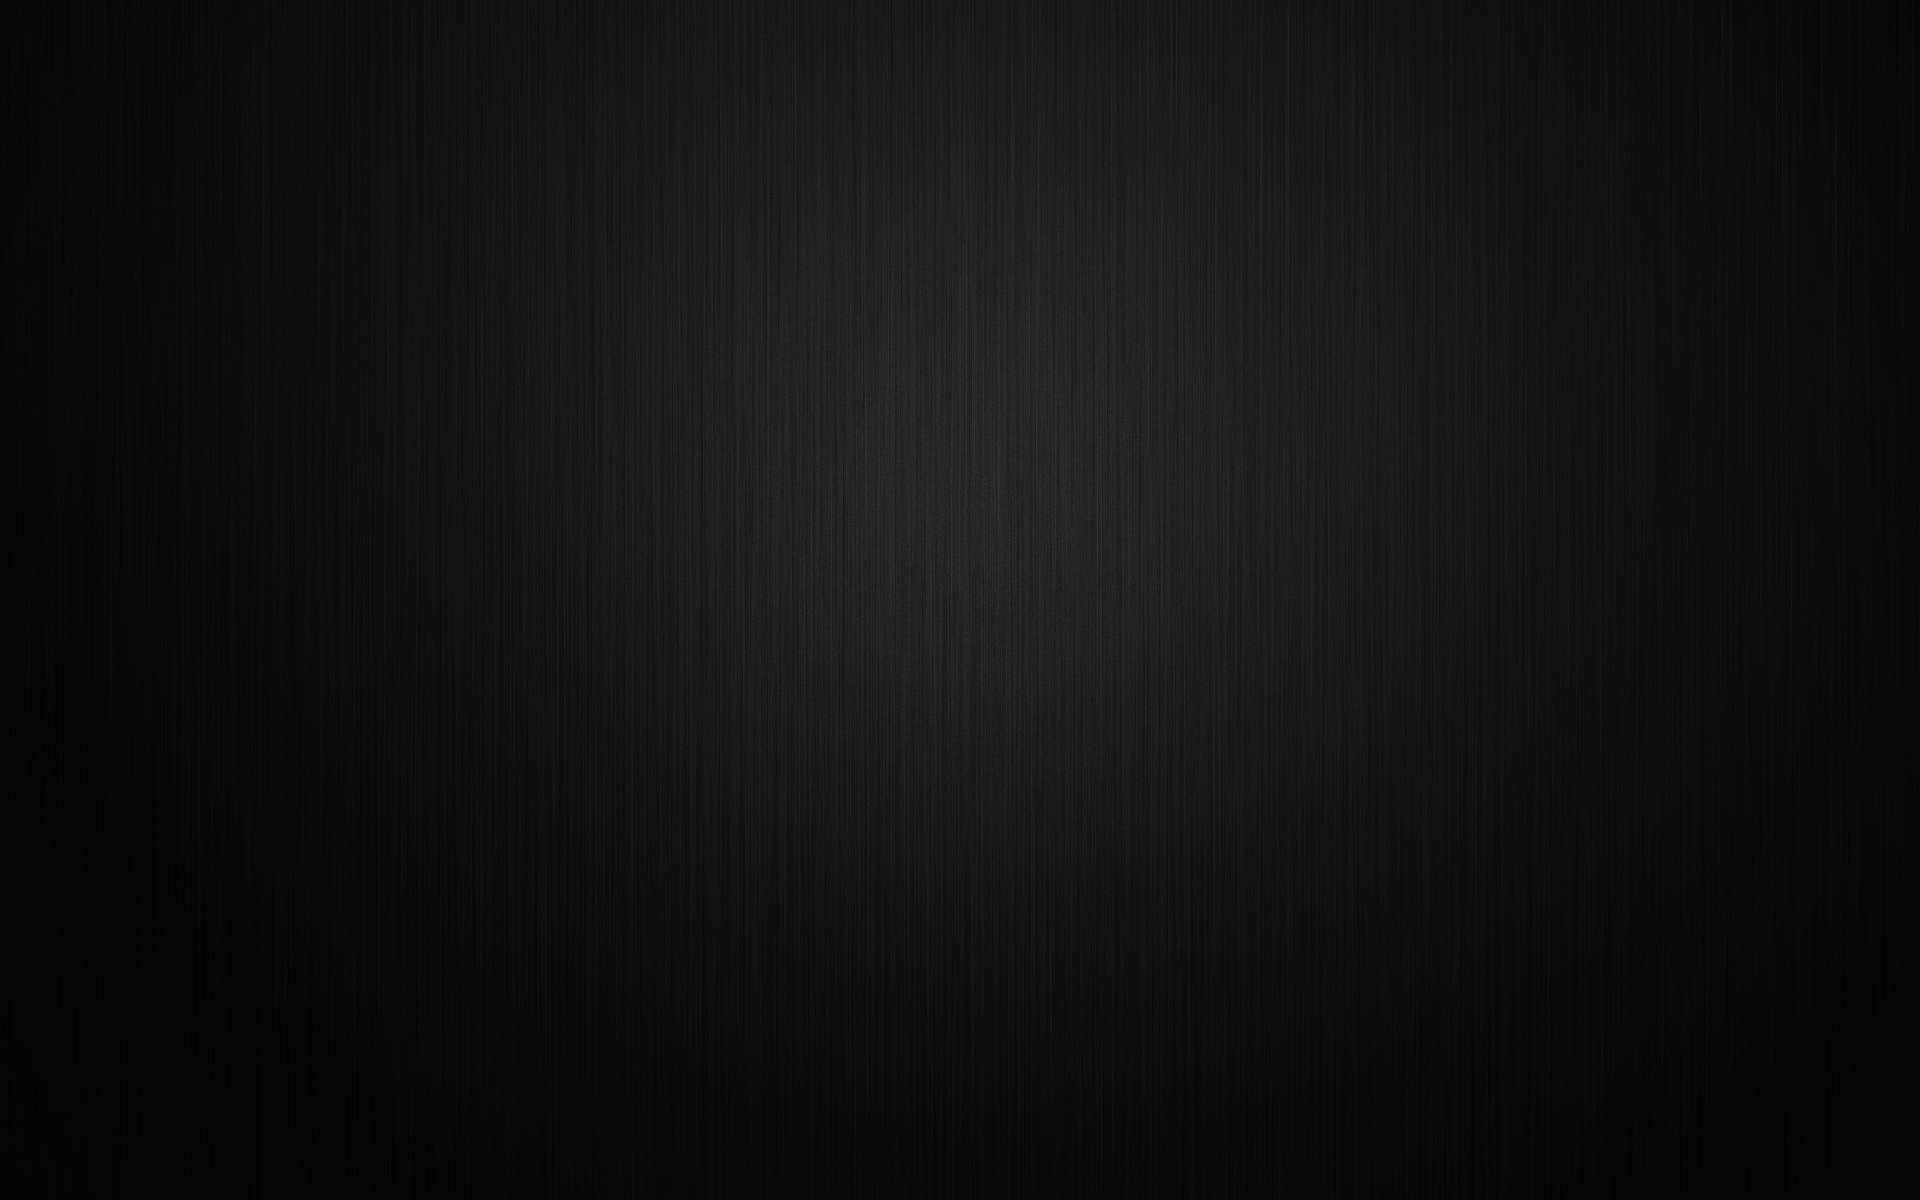 Awesome Black Backgrounds